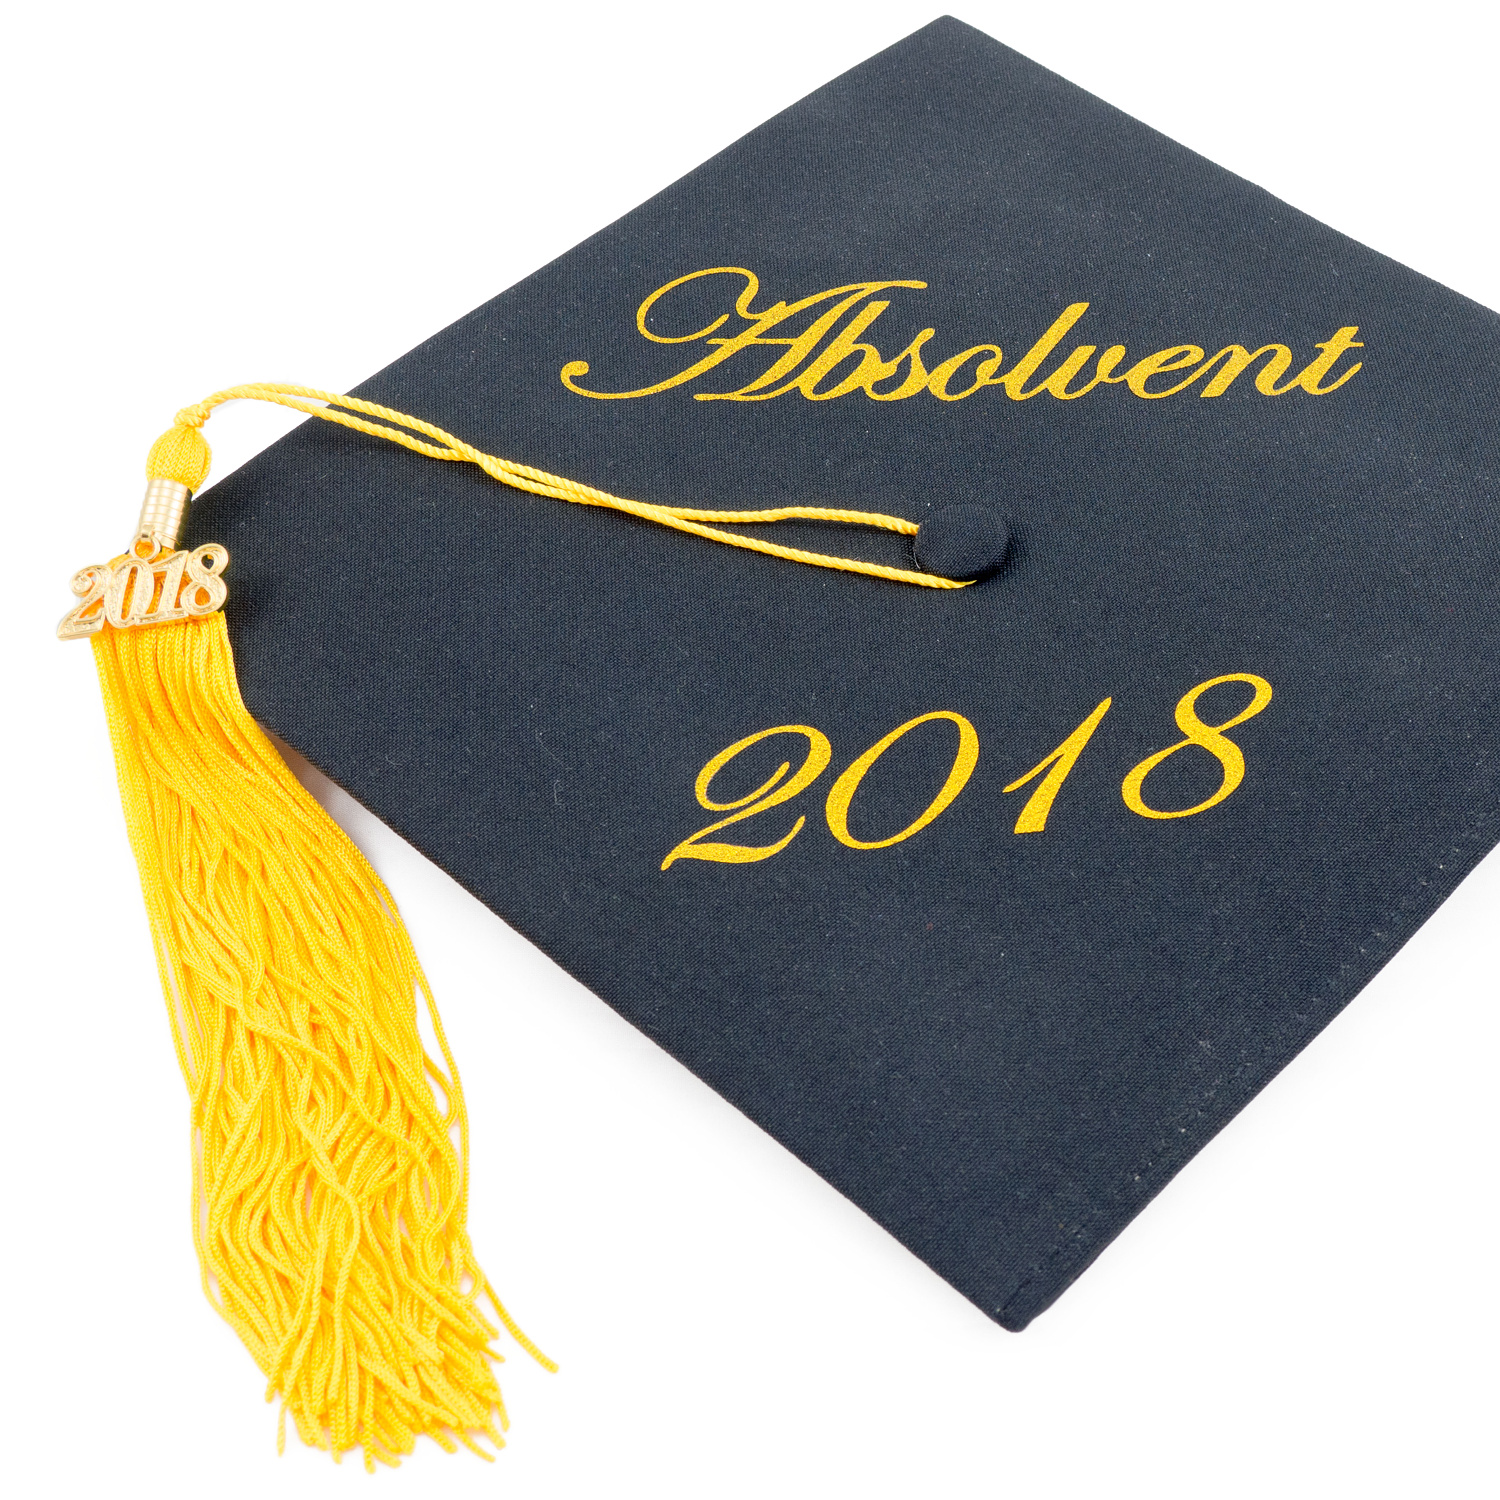 Iron-on inscription on graduation cap